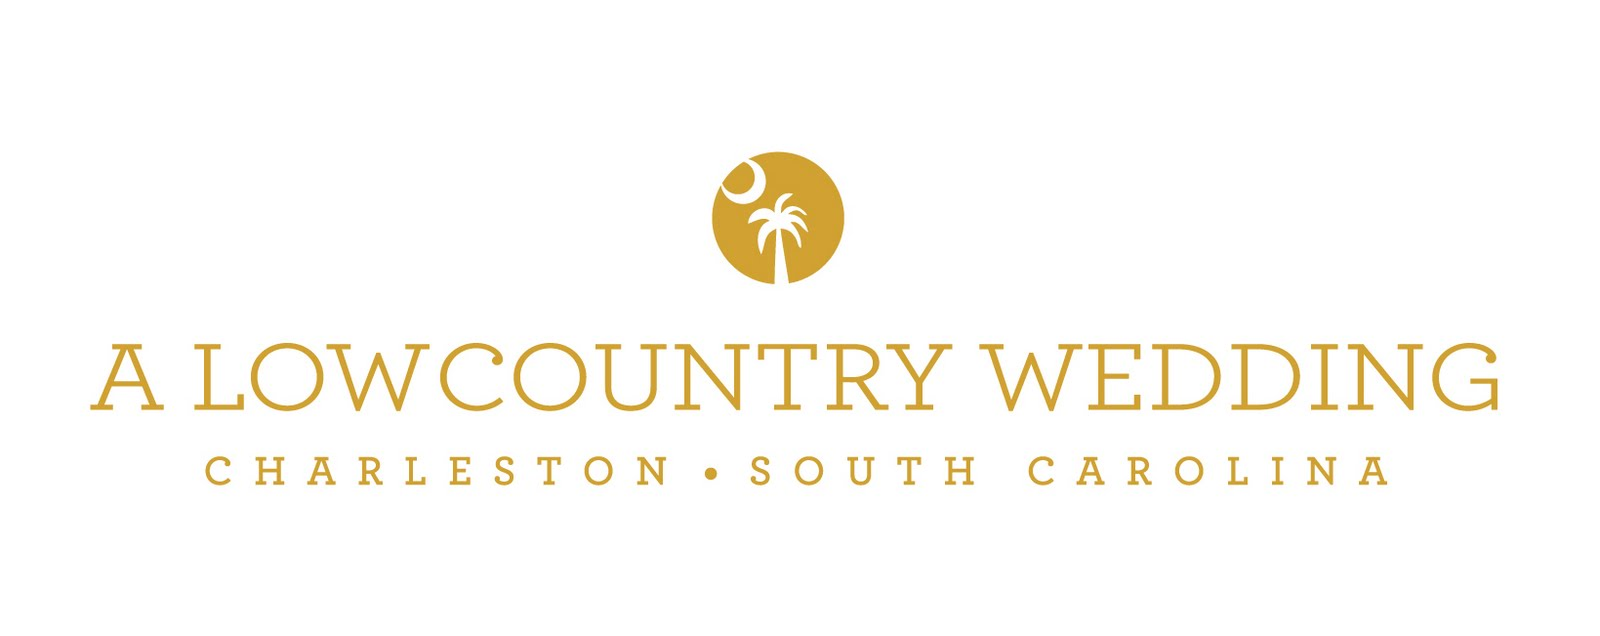 A Lowcountry Wedding - Charleston, Myrtle Beach & Hilton Head's Favorite Wedding Resource